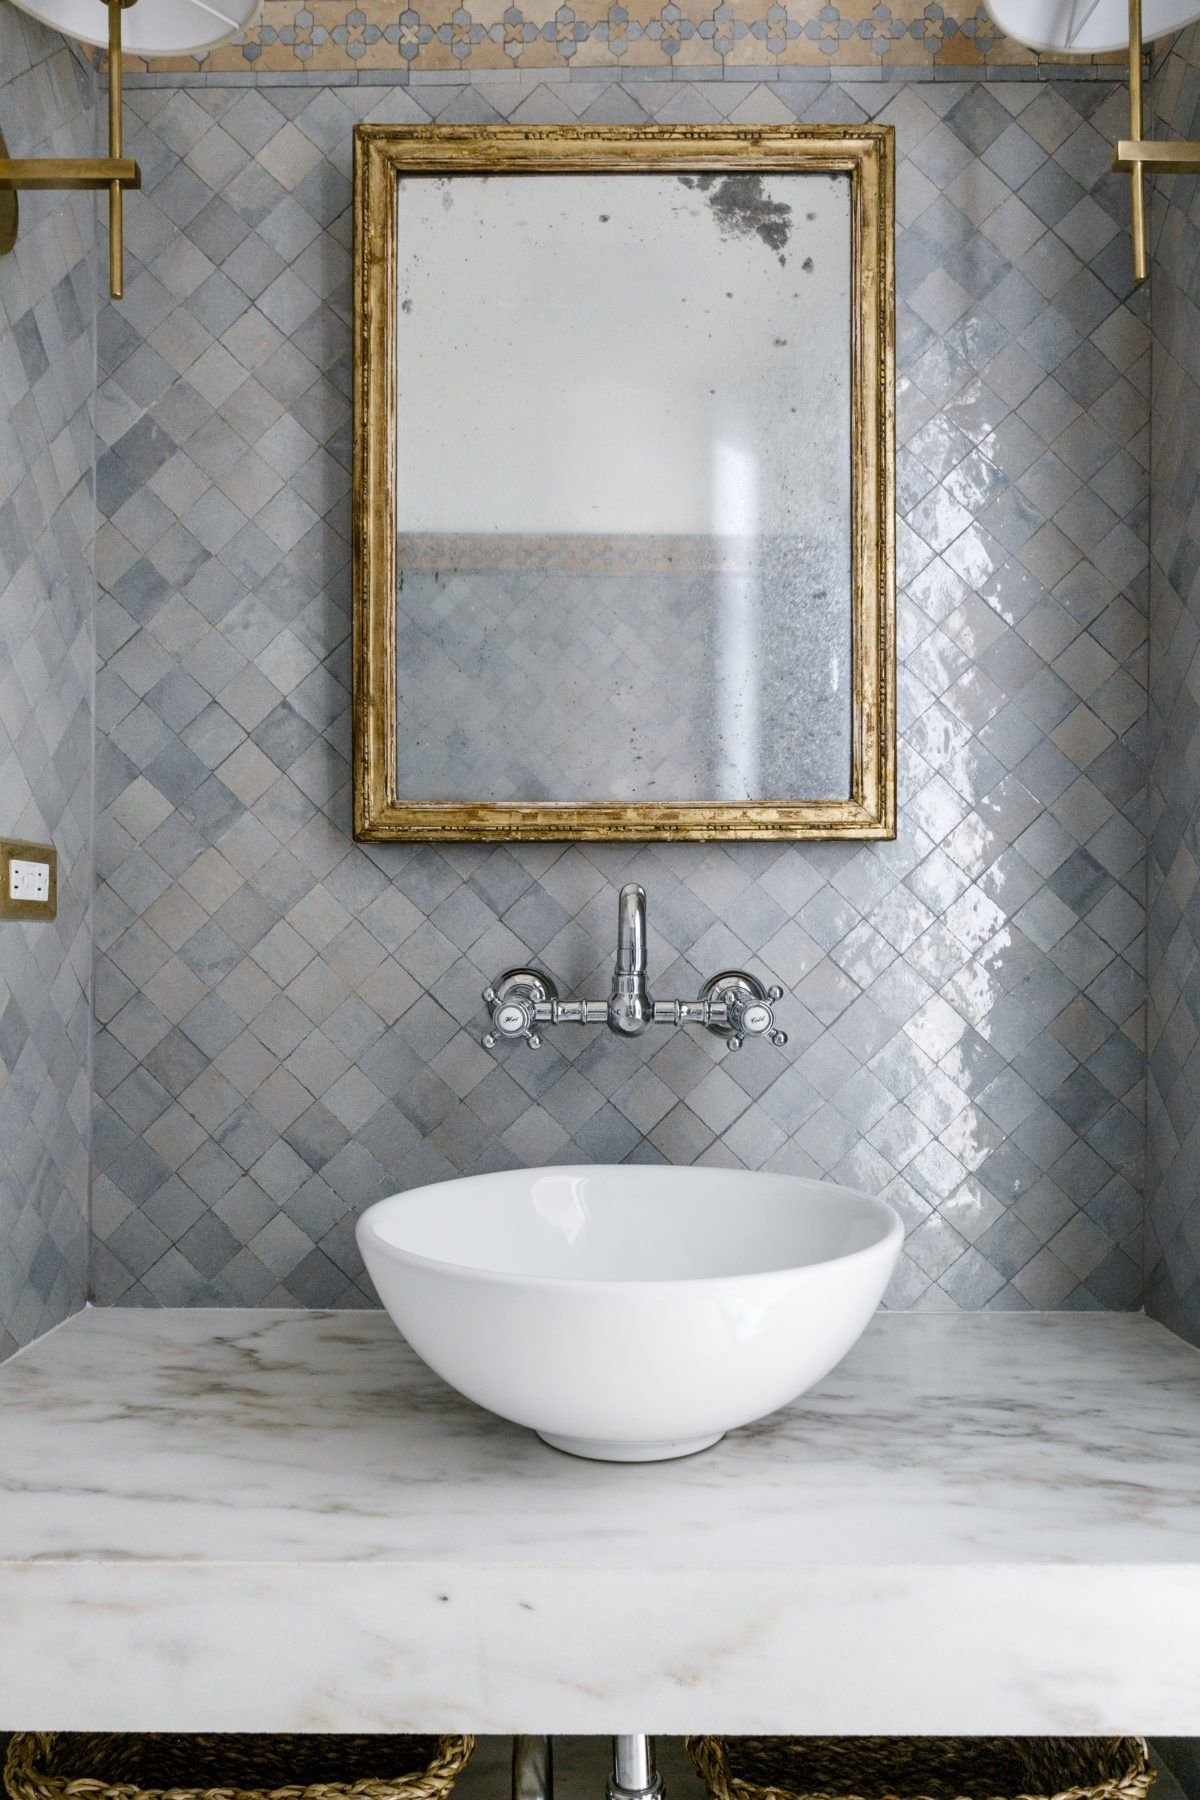 Beautiful Gray Blue Zellige Tile Behind The Vanity Vessel Sink Wall Mounted Chrome Faucet Go Bathroom Interior Design Bathroom Interior Bathrooms Remodel